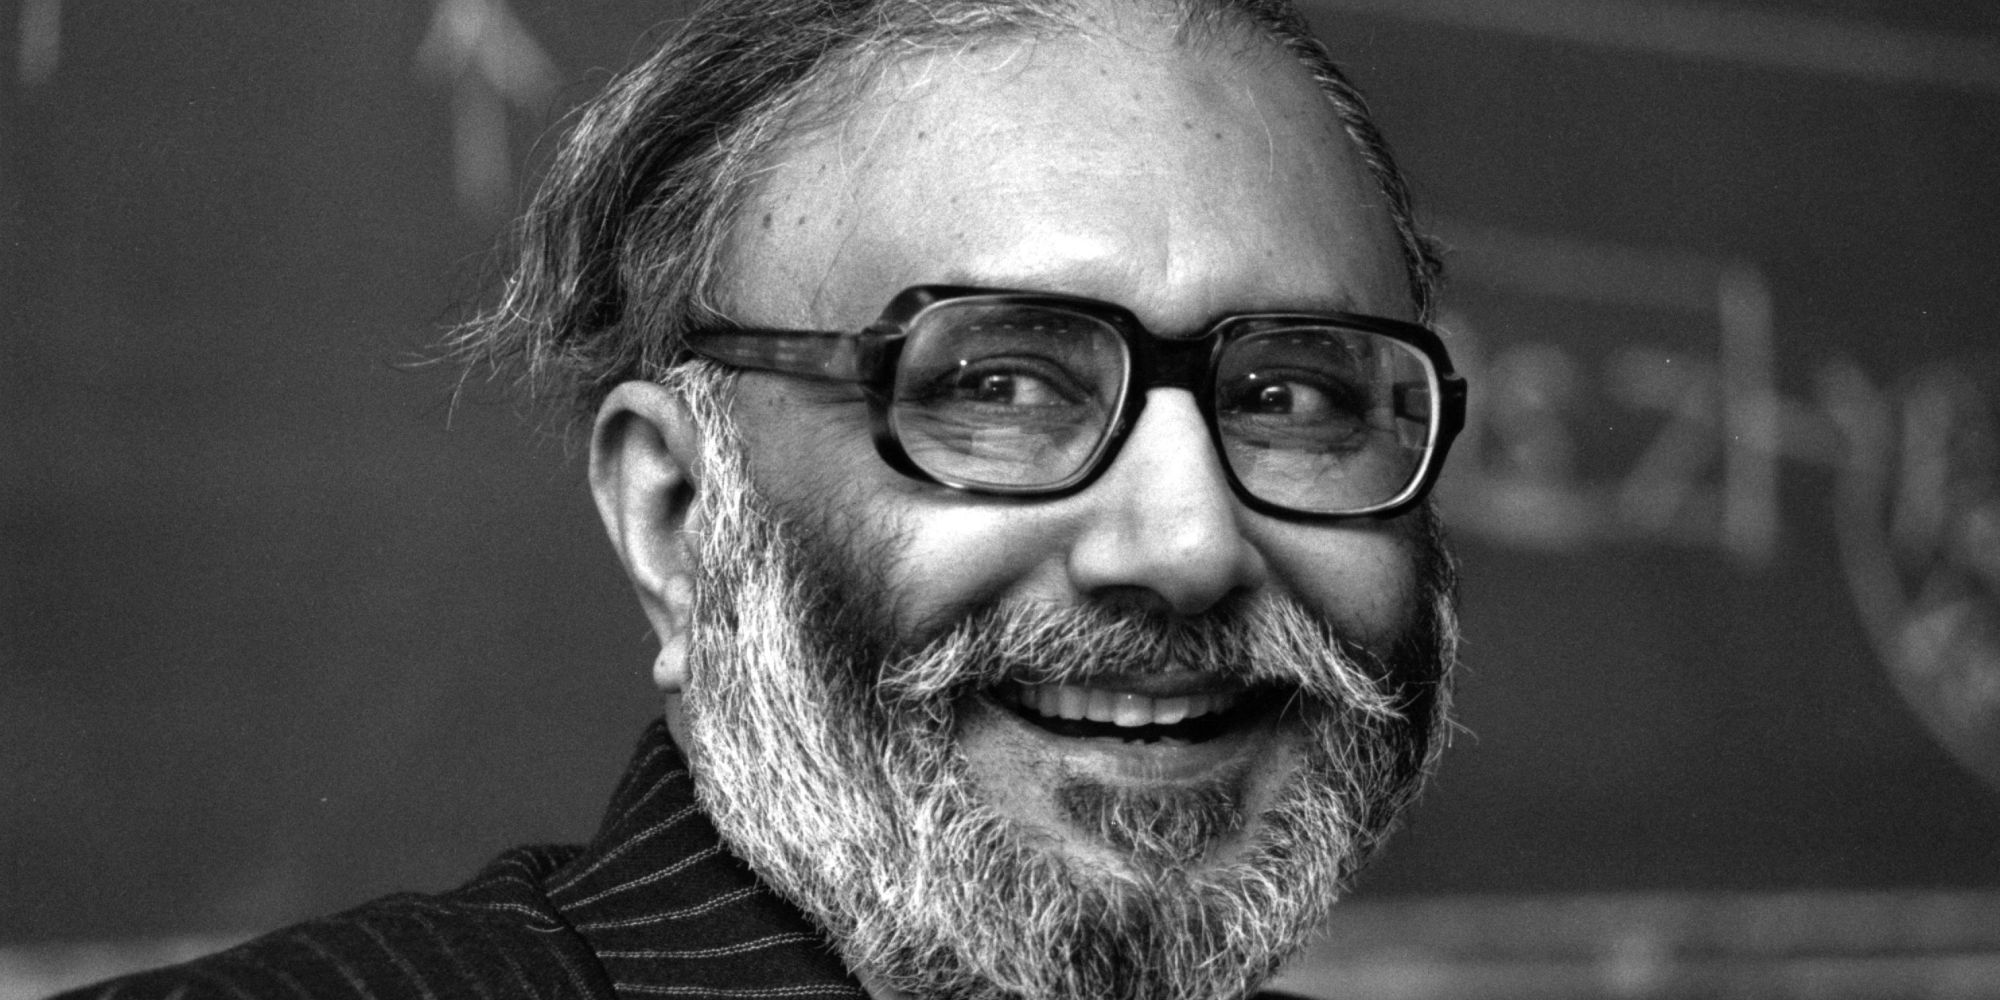 15th October 1979: Joint Nobel Physics prize winner and Imperial College of London professor Abdus Salam, originally from Pakistan. (Photo by Keystone/Getty Images)